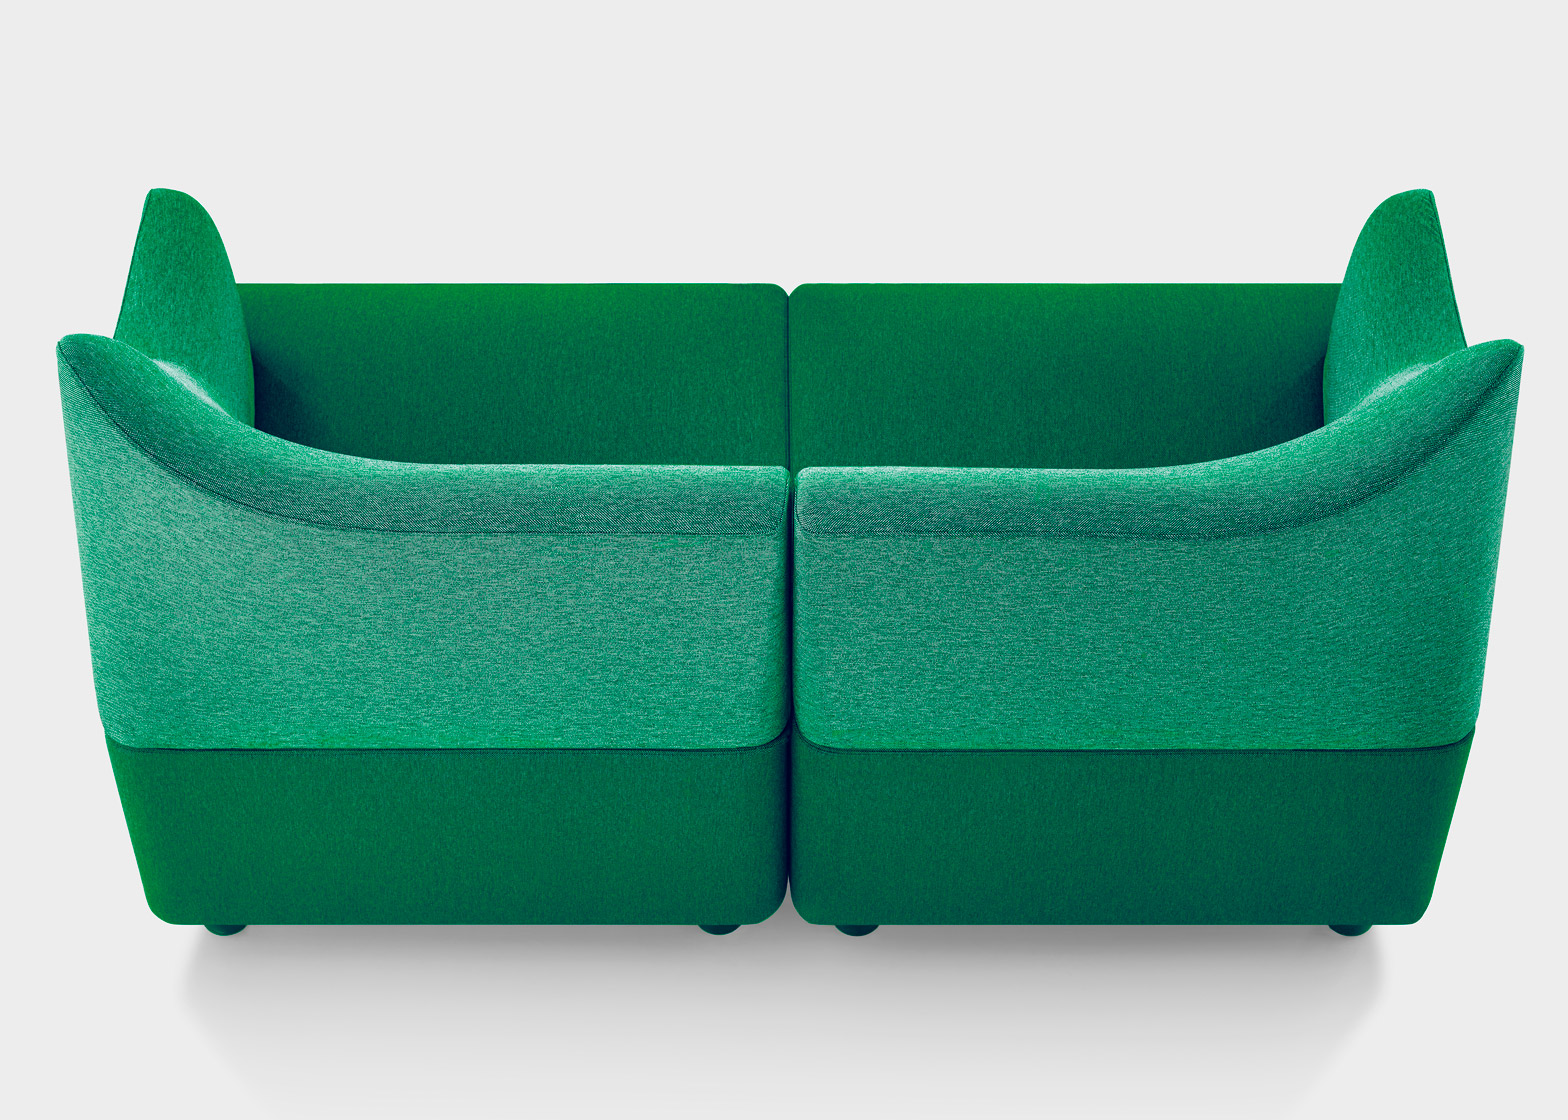 Herman Miller Launches Plex Modular Lounge Seating By